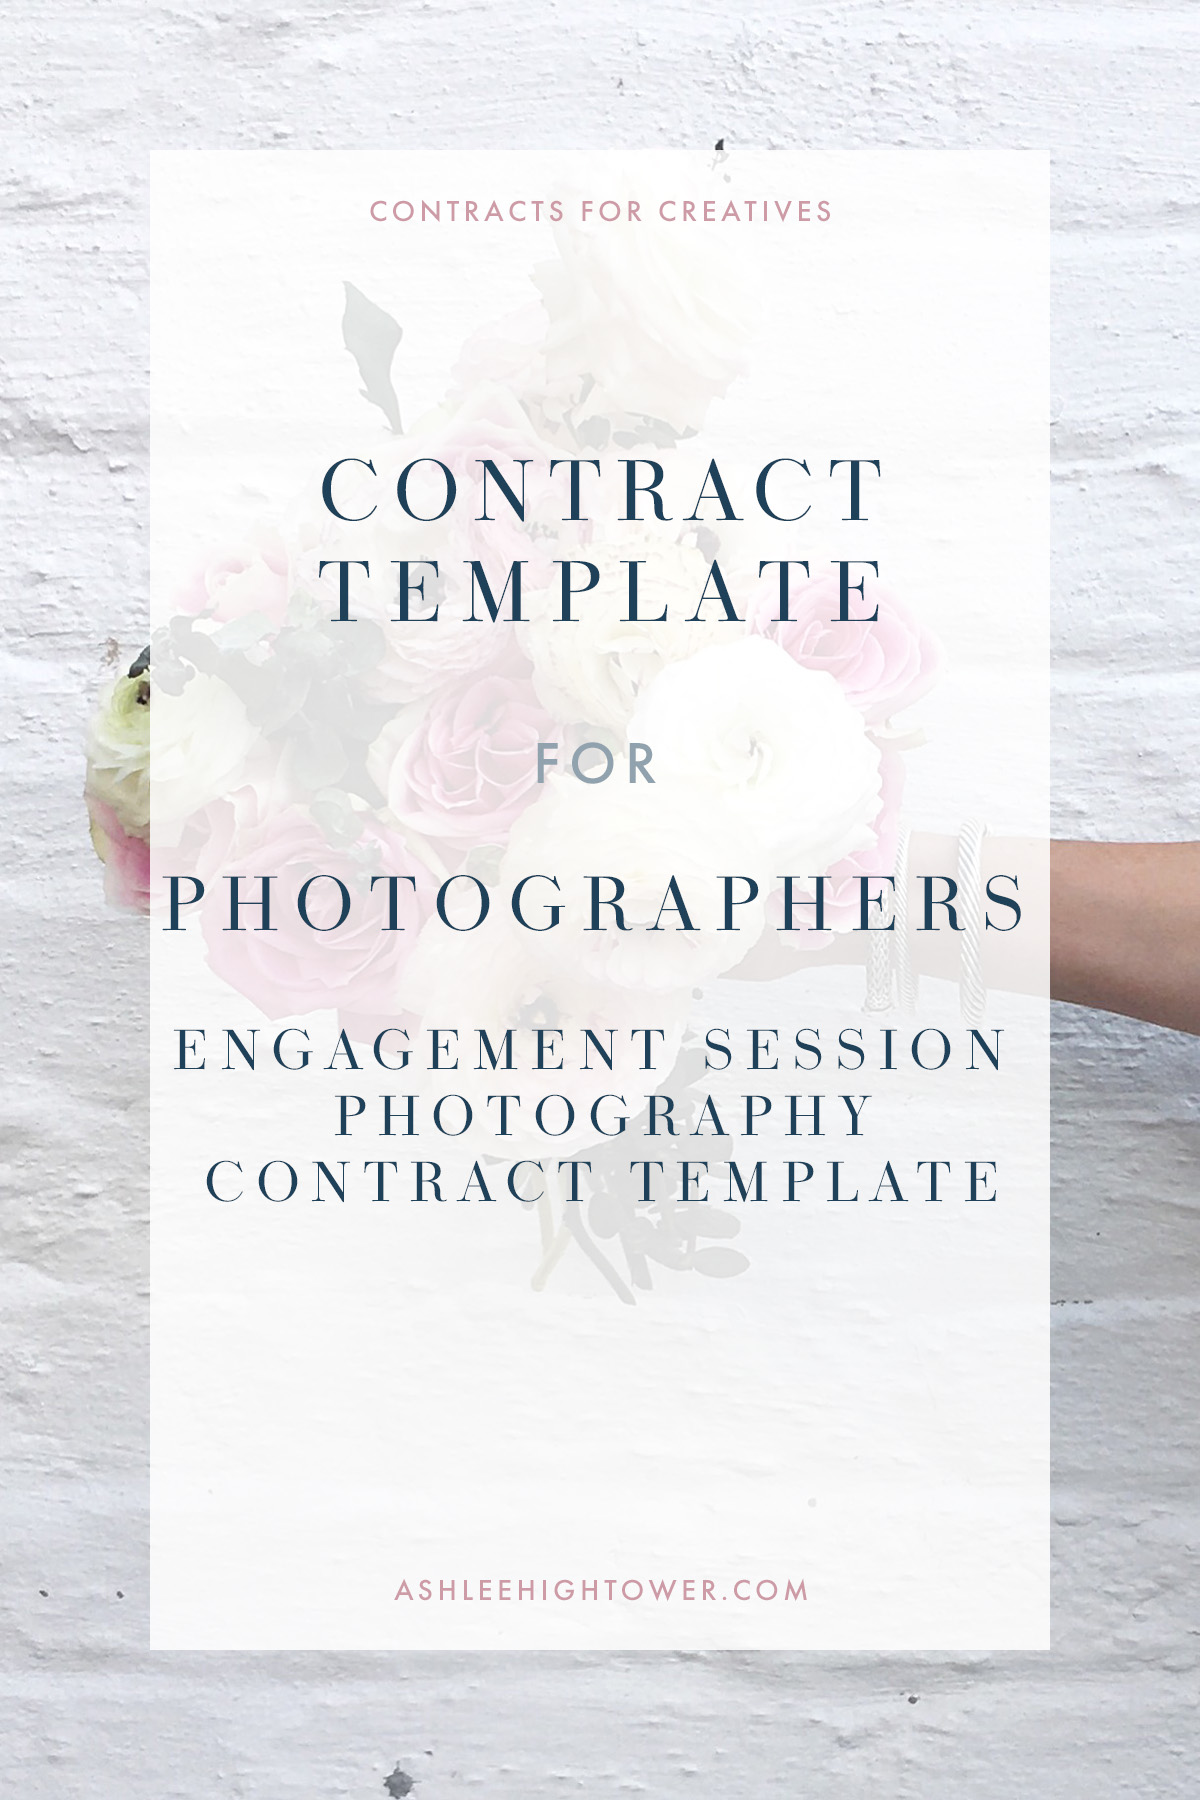 Contracts for Creatives   Photographer Engagement Session Contract Template     Photographer Contracts   Ashlee Hightower